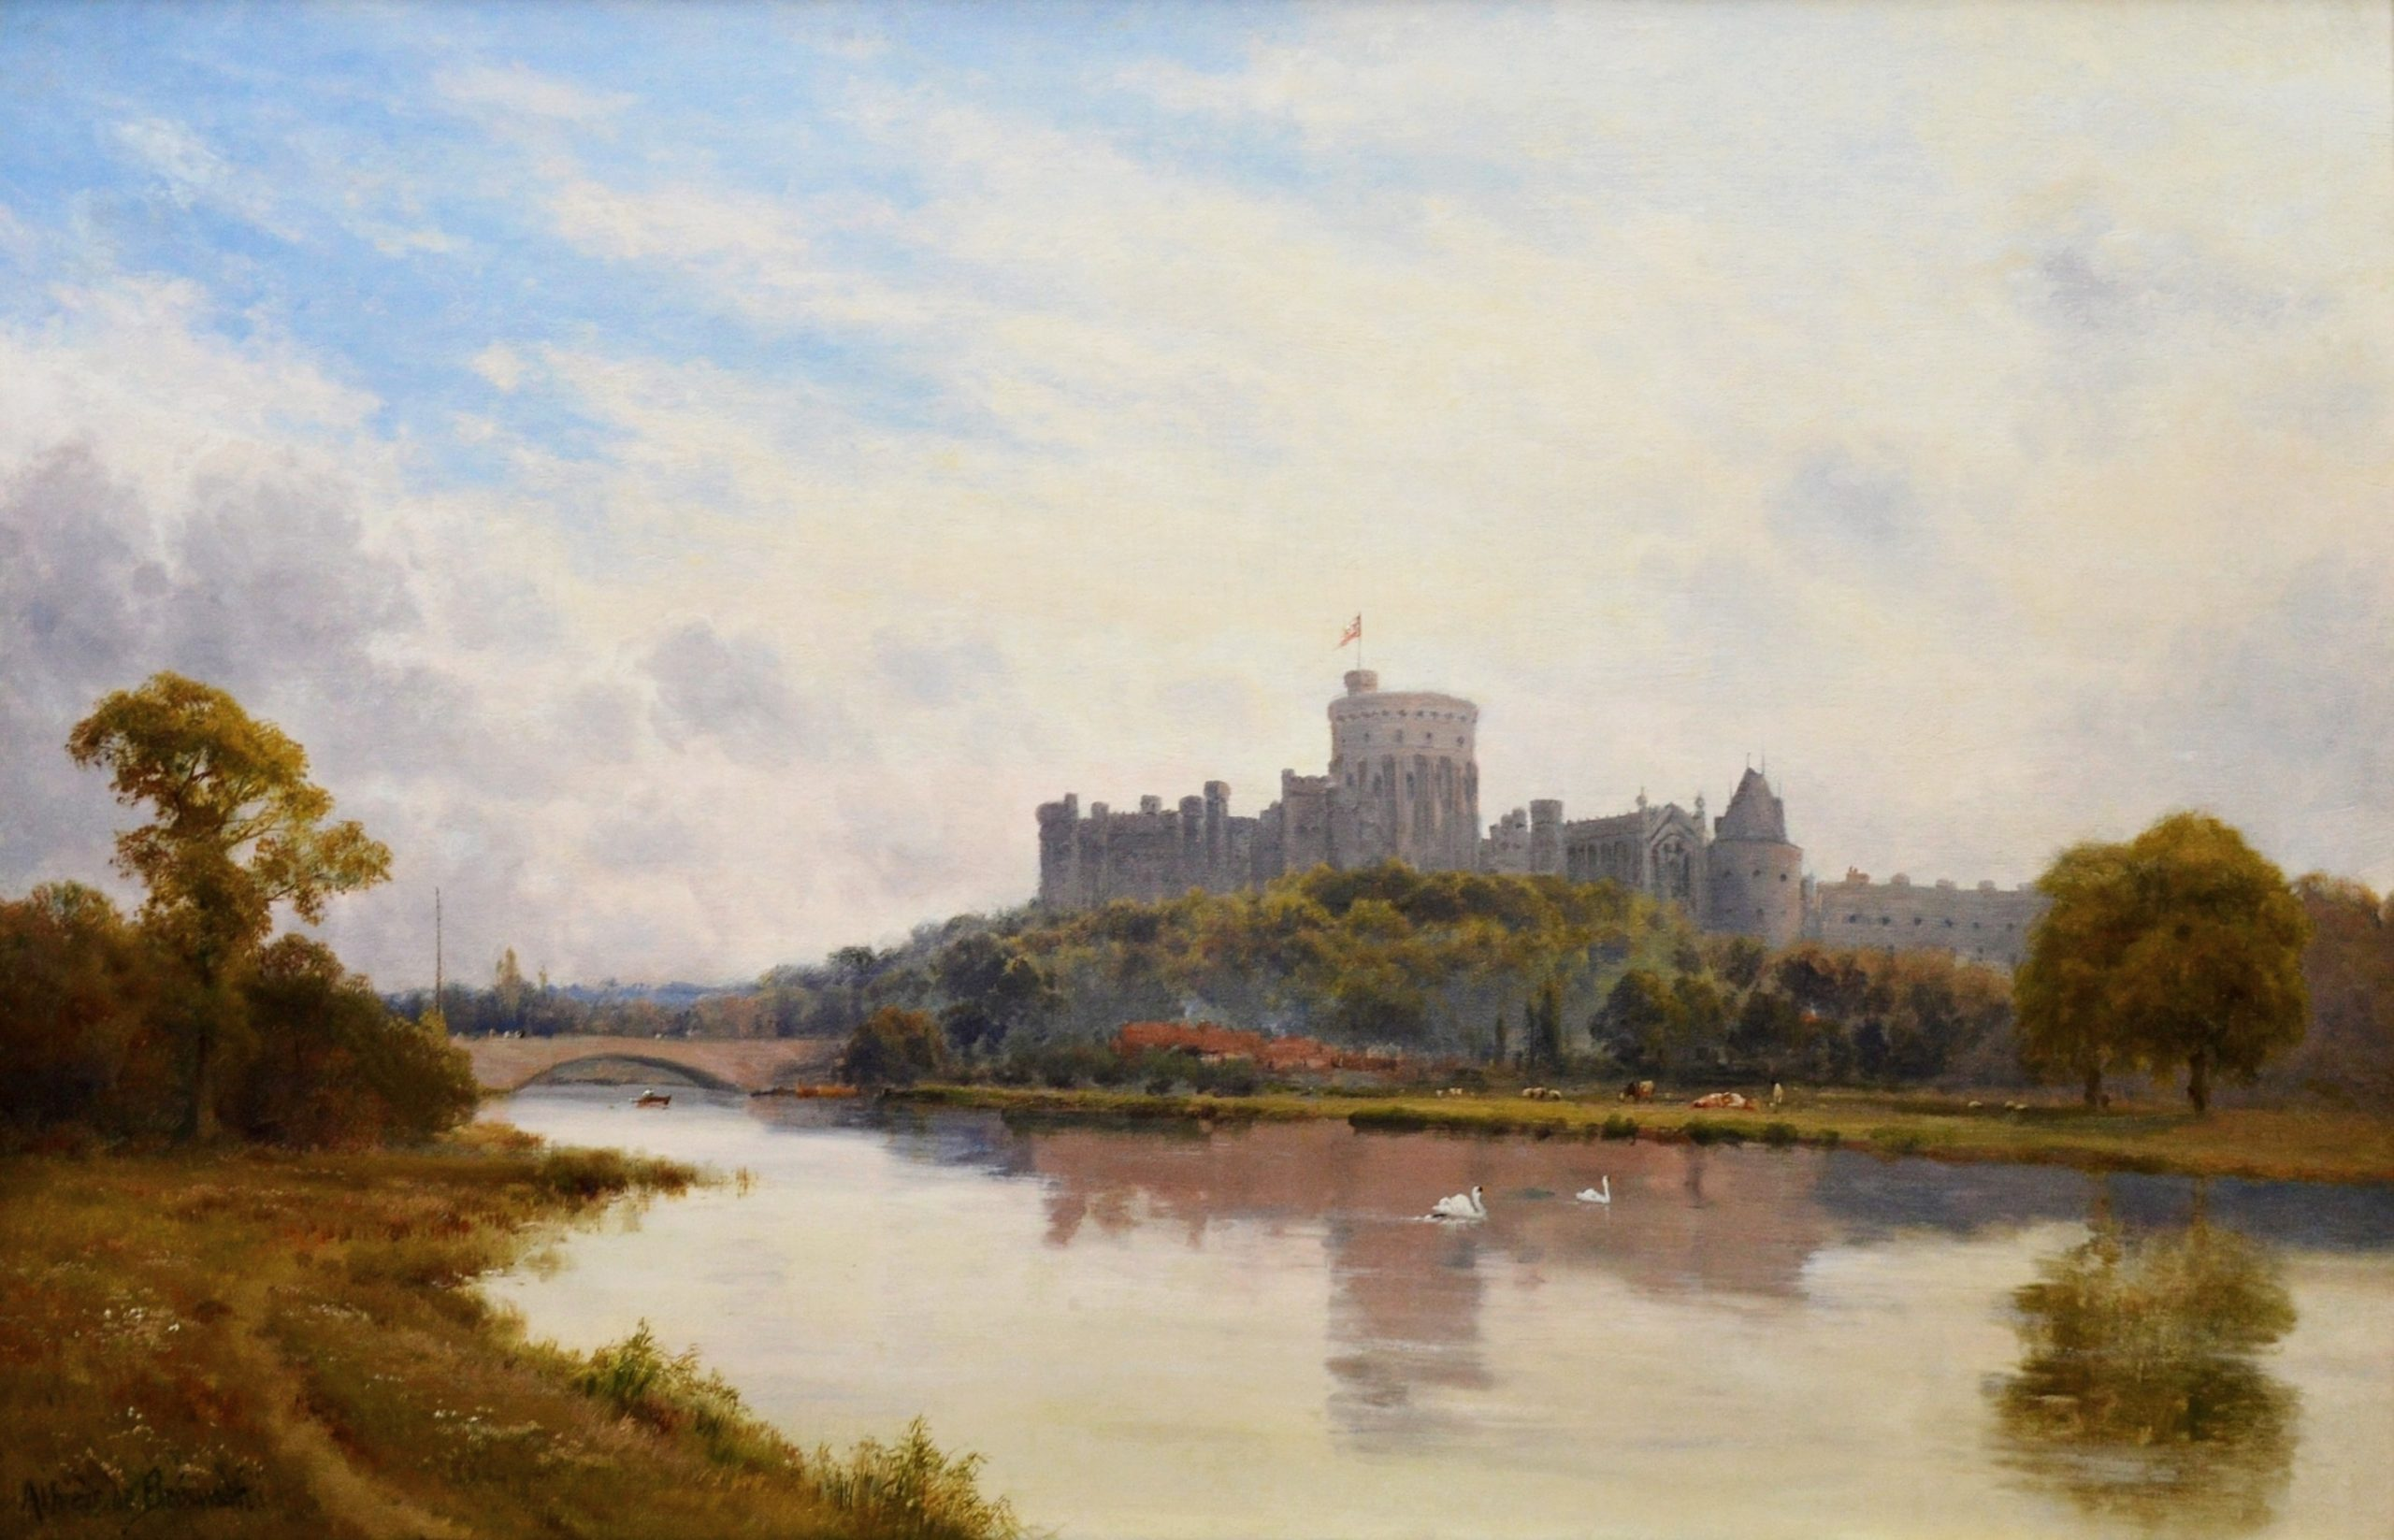 Windsor Castle from the Thames - 19th Century Landscape Oil Painting of English Royal Residence Image